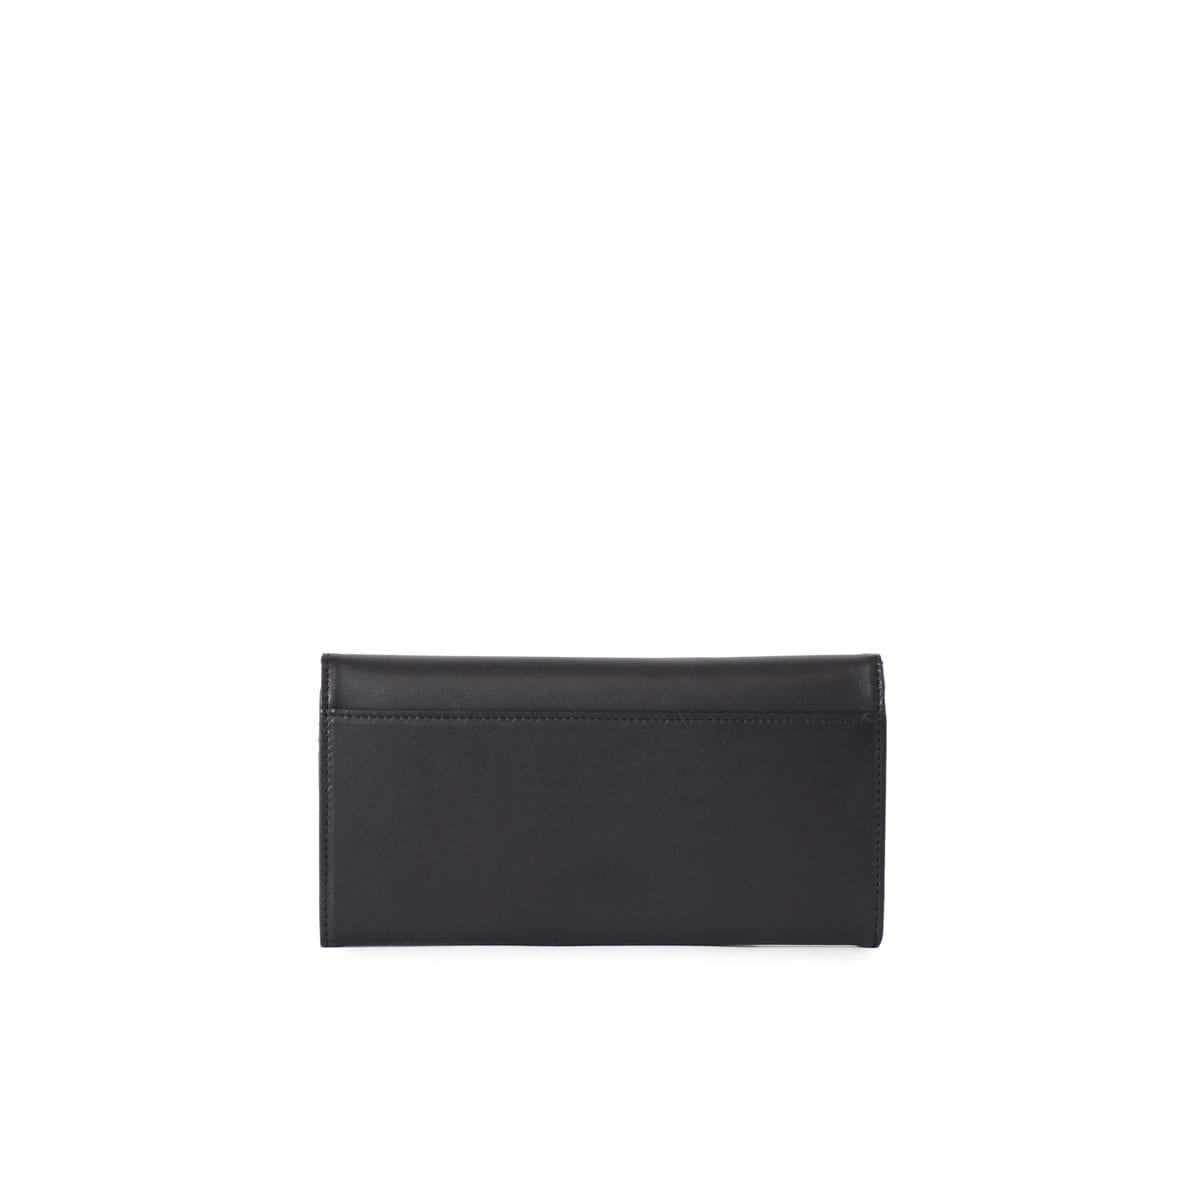 LUMI Sylvi Maxi Trifold Wallet. This little trifold wallet safe-keeps your cards and cash in style. The wallet is handmade from lovely and soft sheep napa leather, which makes it beautiful to hold in your hand.